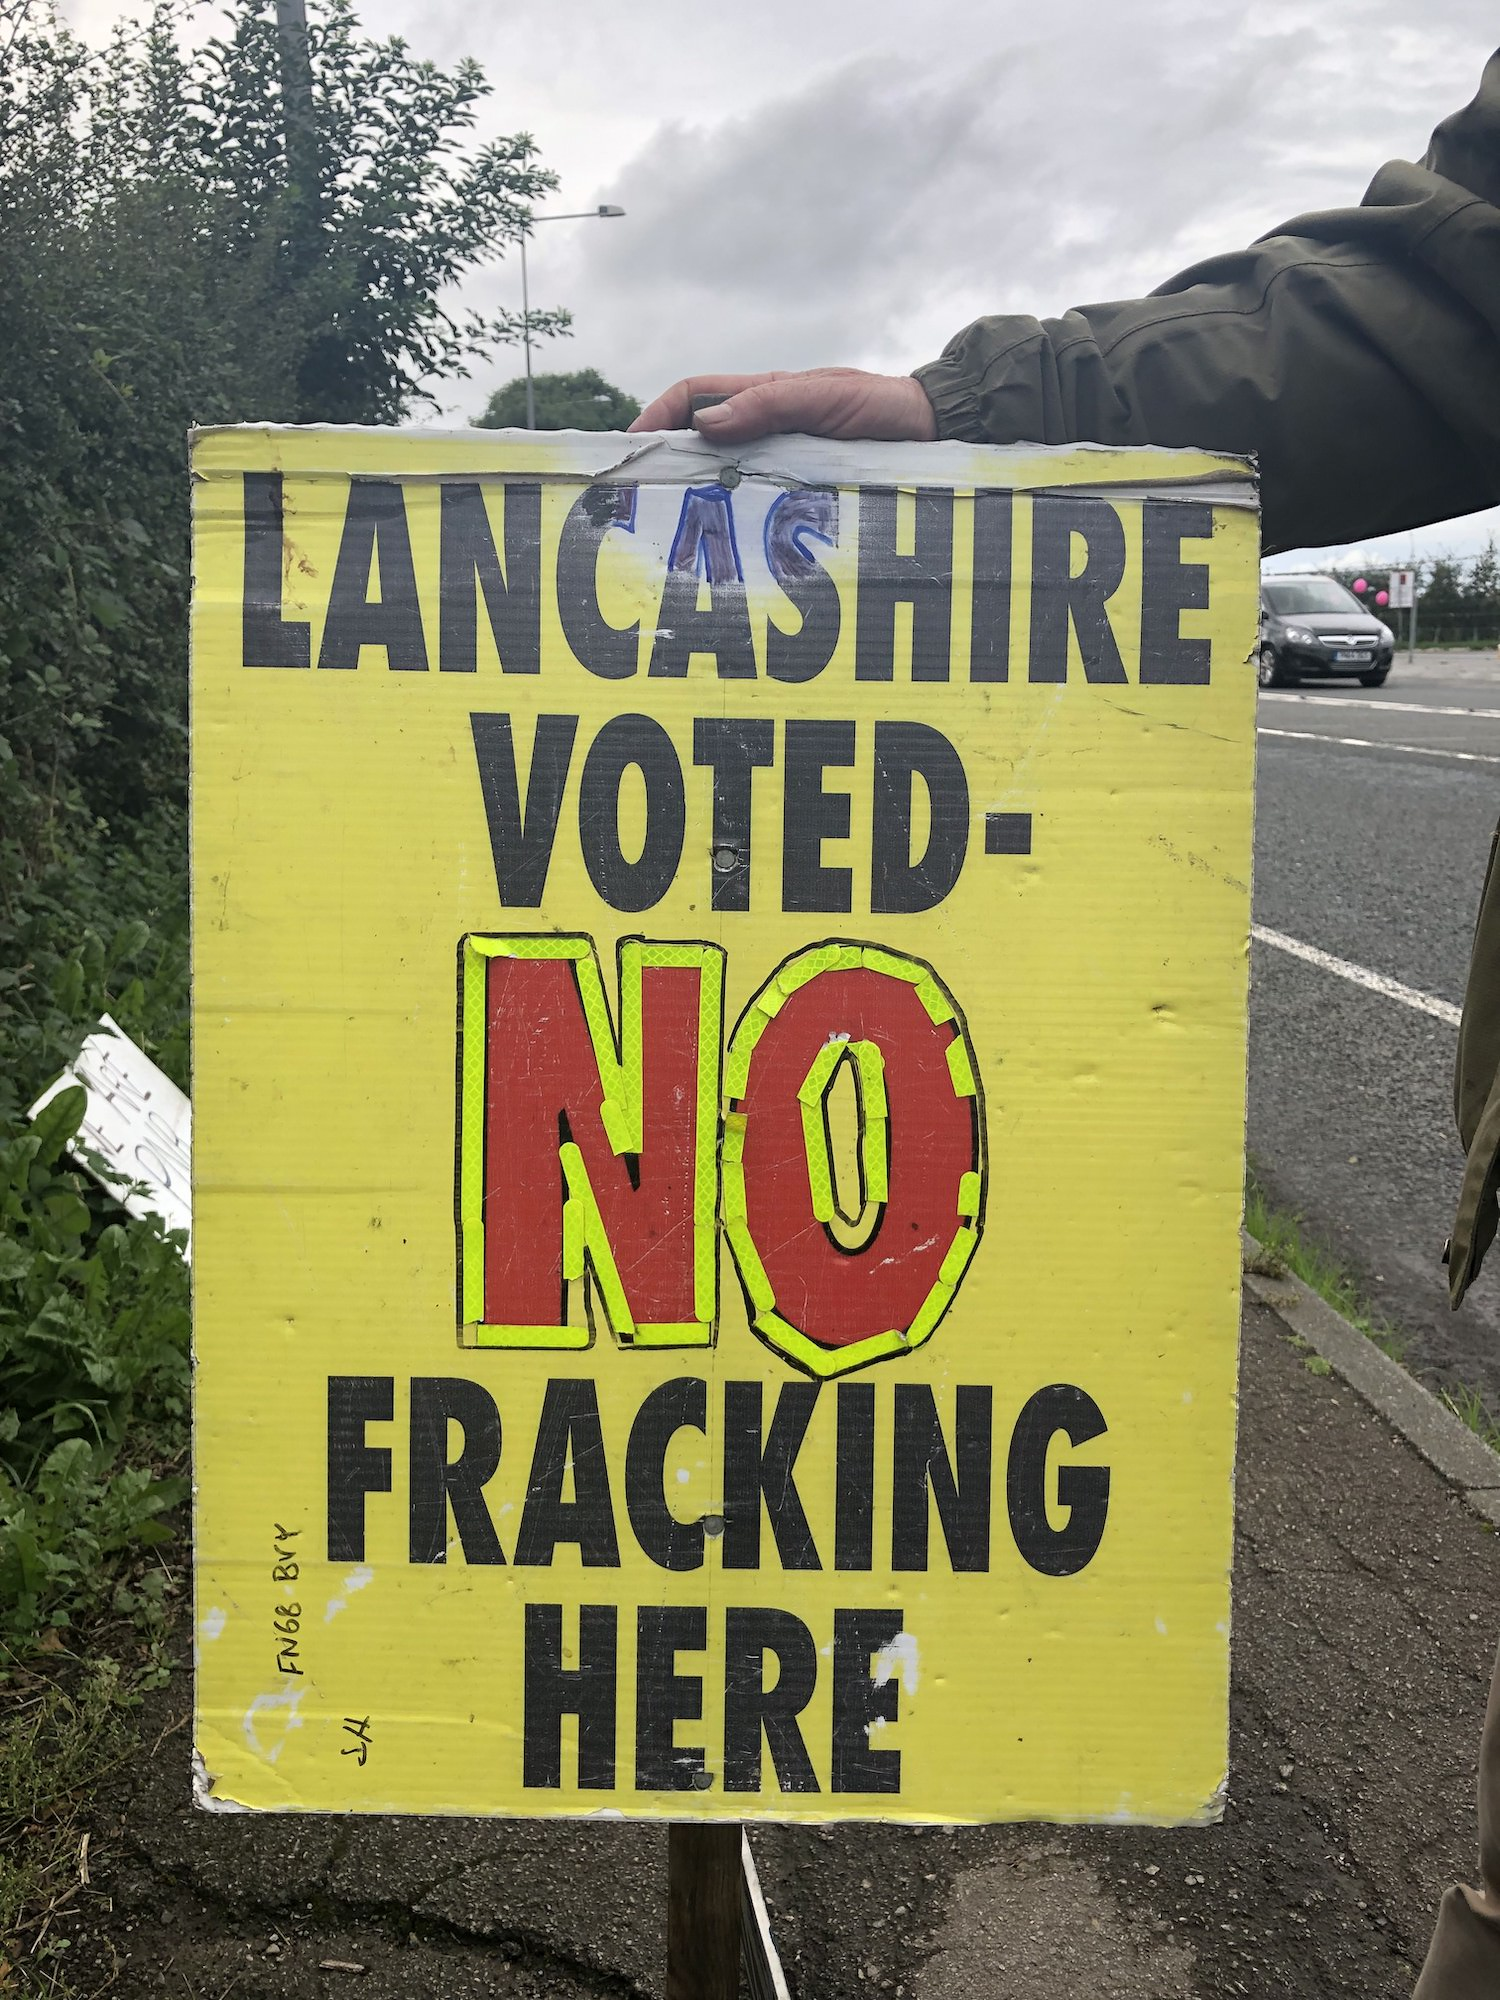 An antifracking protest sign